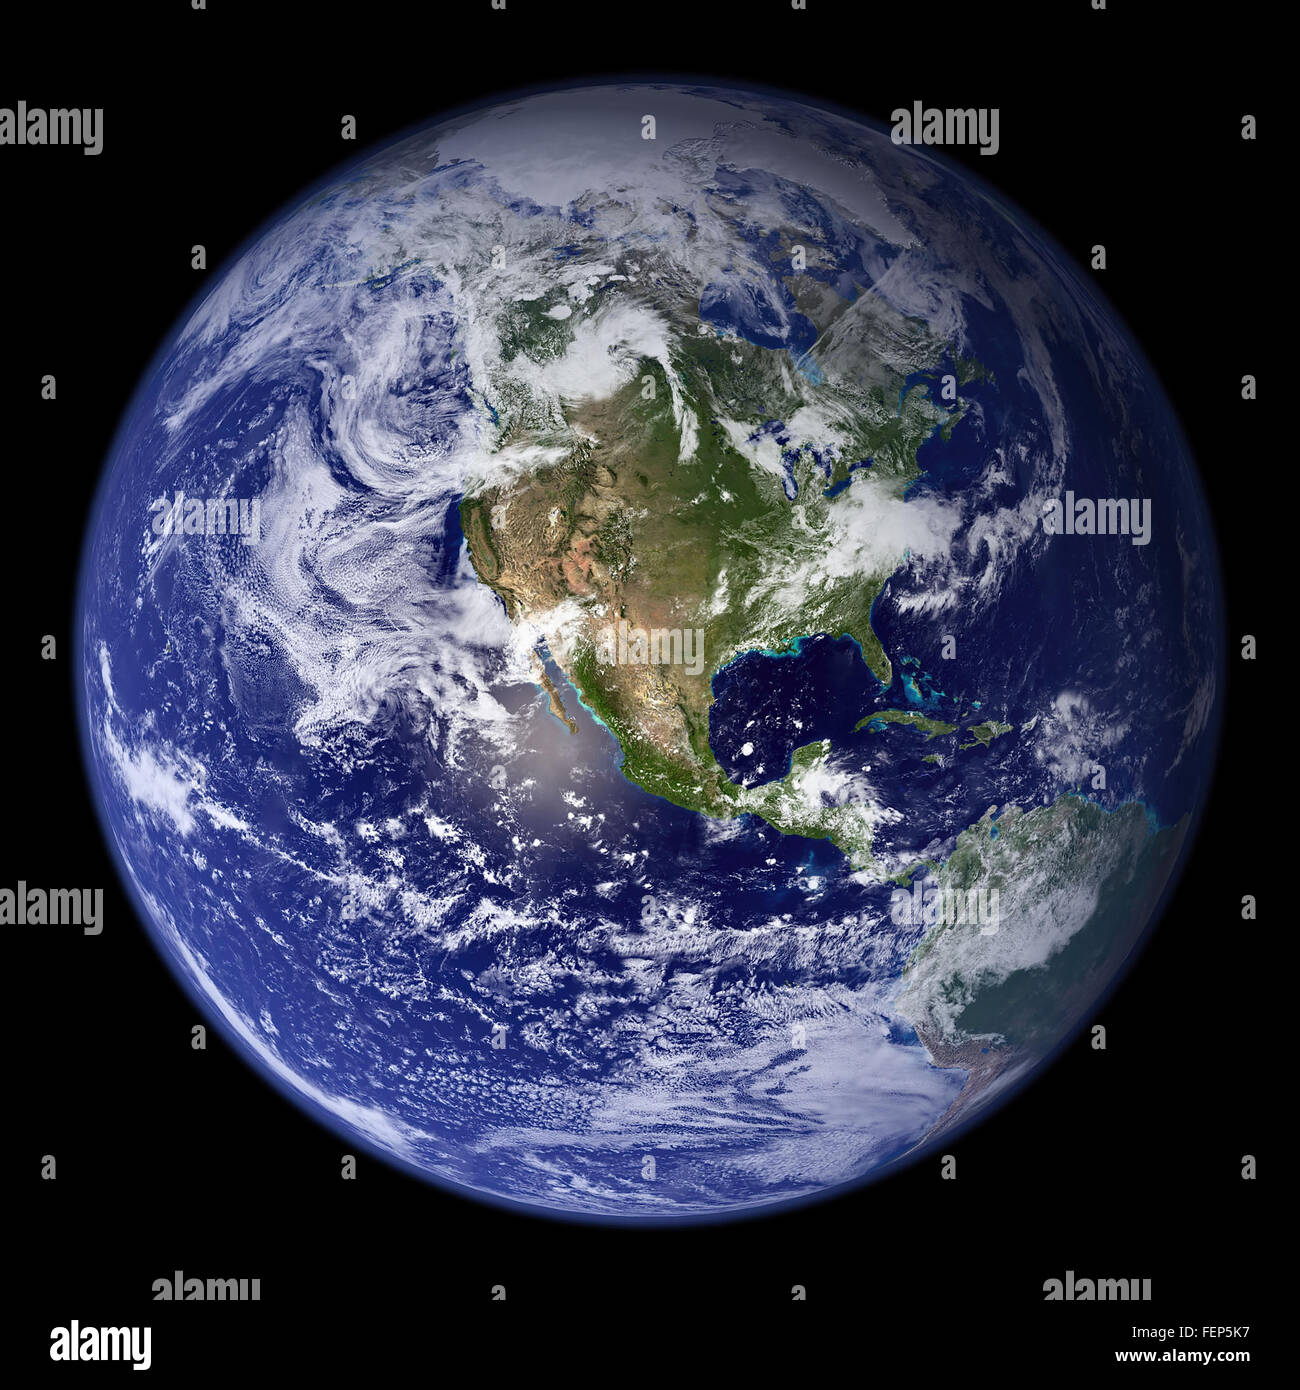 Earth from Space showing North America - Stock Image